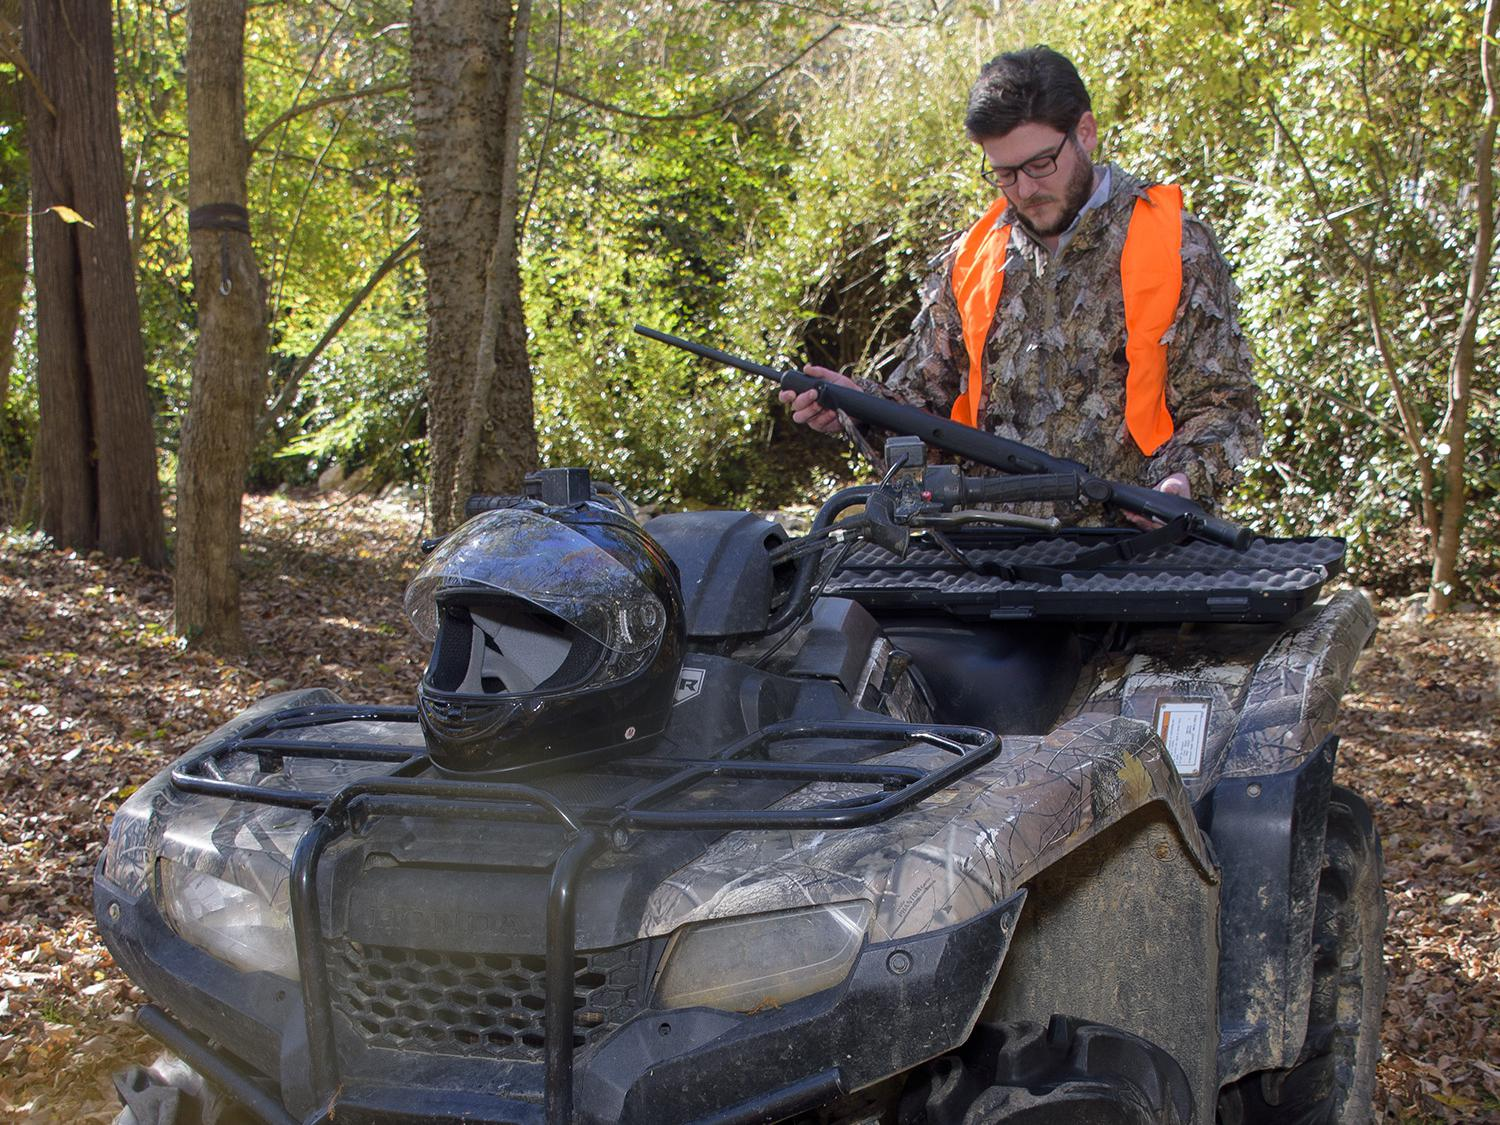 A hunter in camouflage and an orange vest places his rifle into storage on the back of an ATV in the woods.